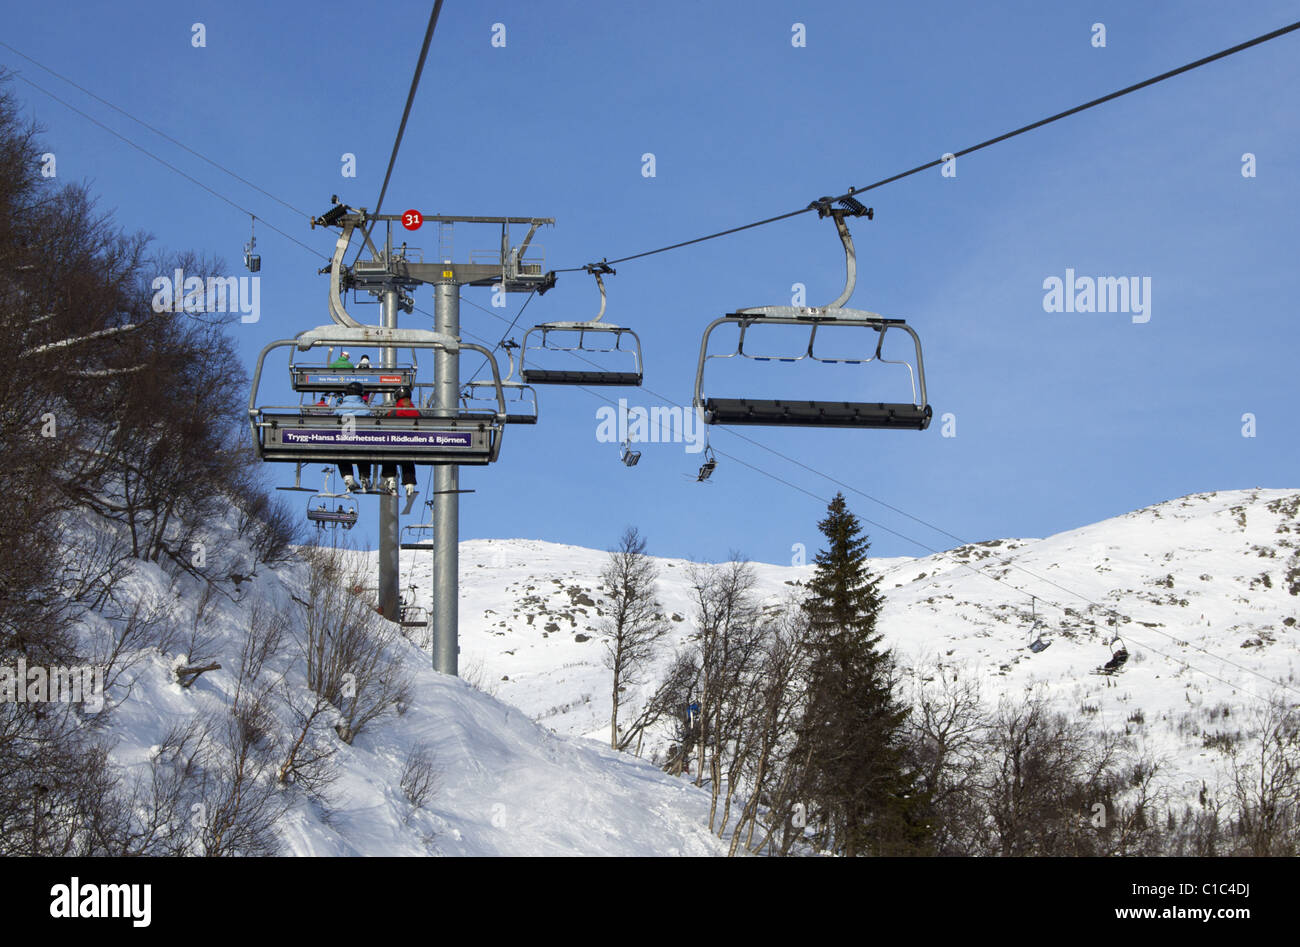 Chairlifts in Swedish ski resort of Åre (Are) Stock Photo